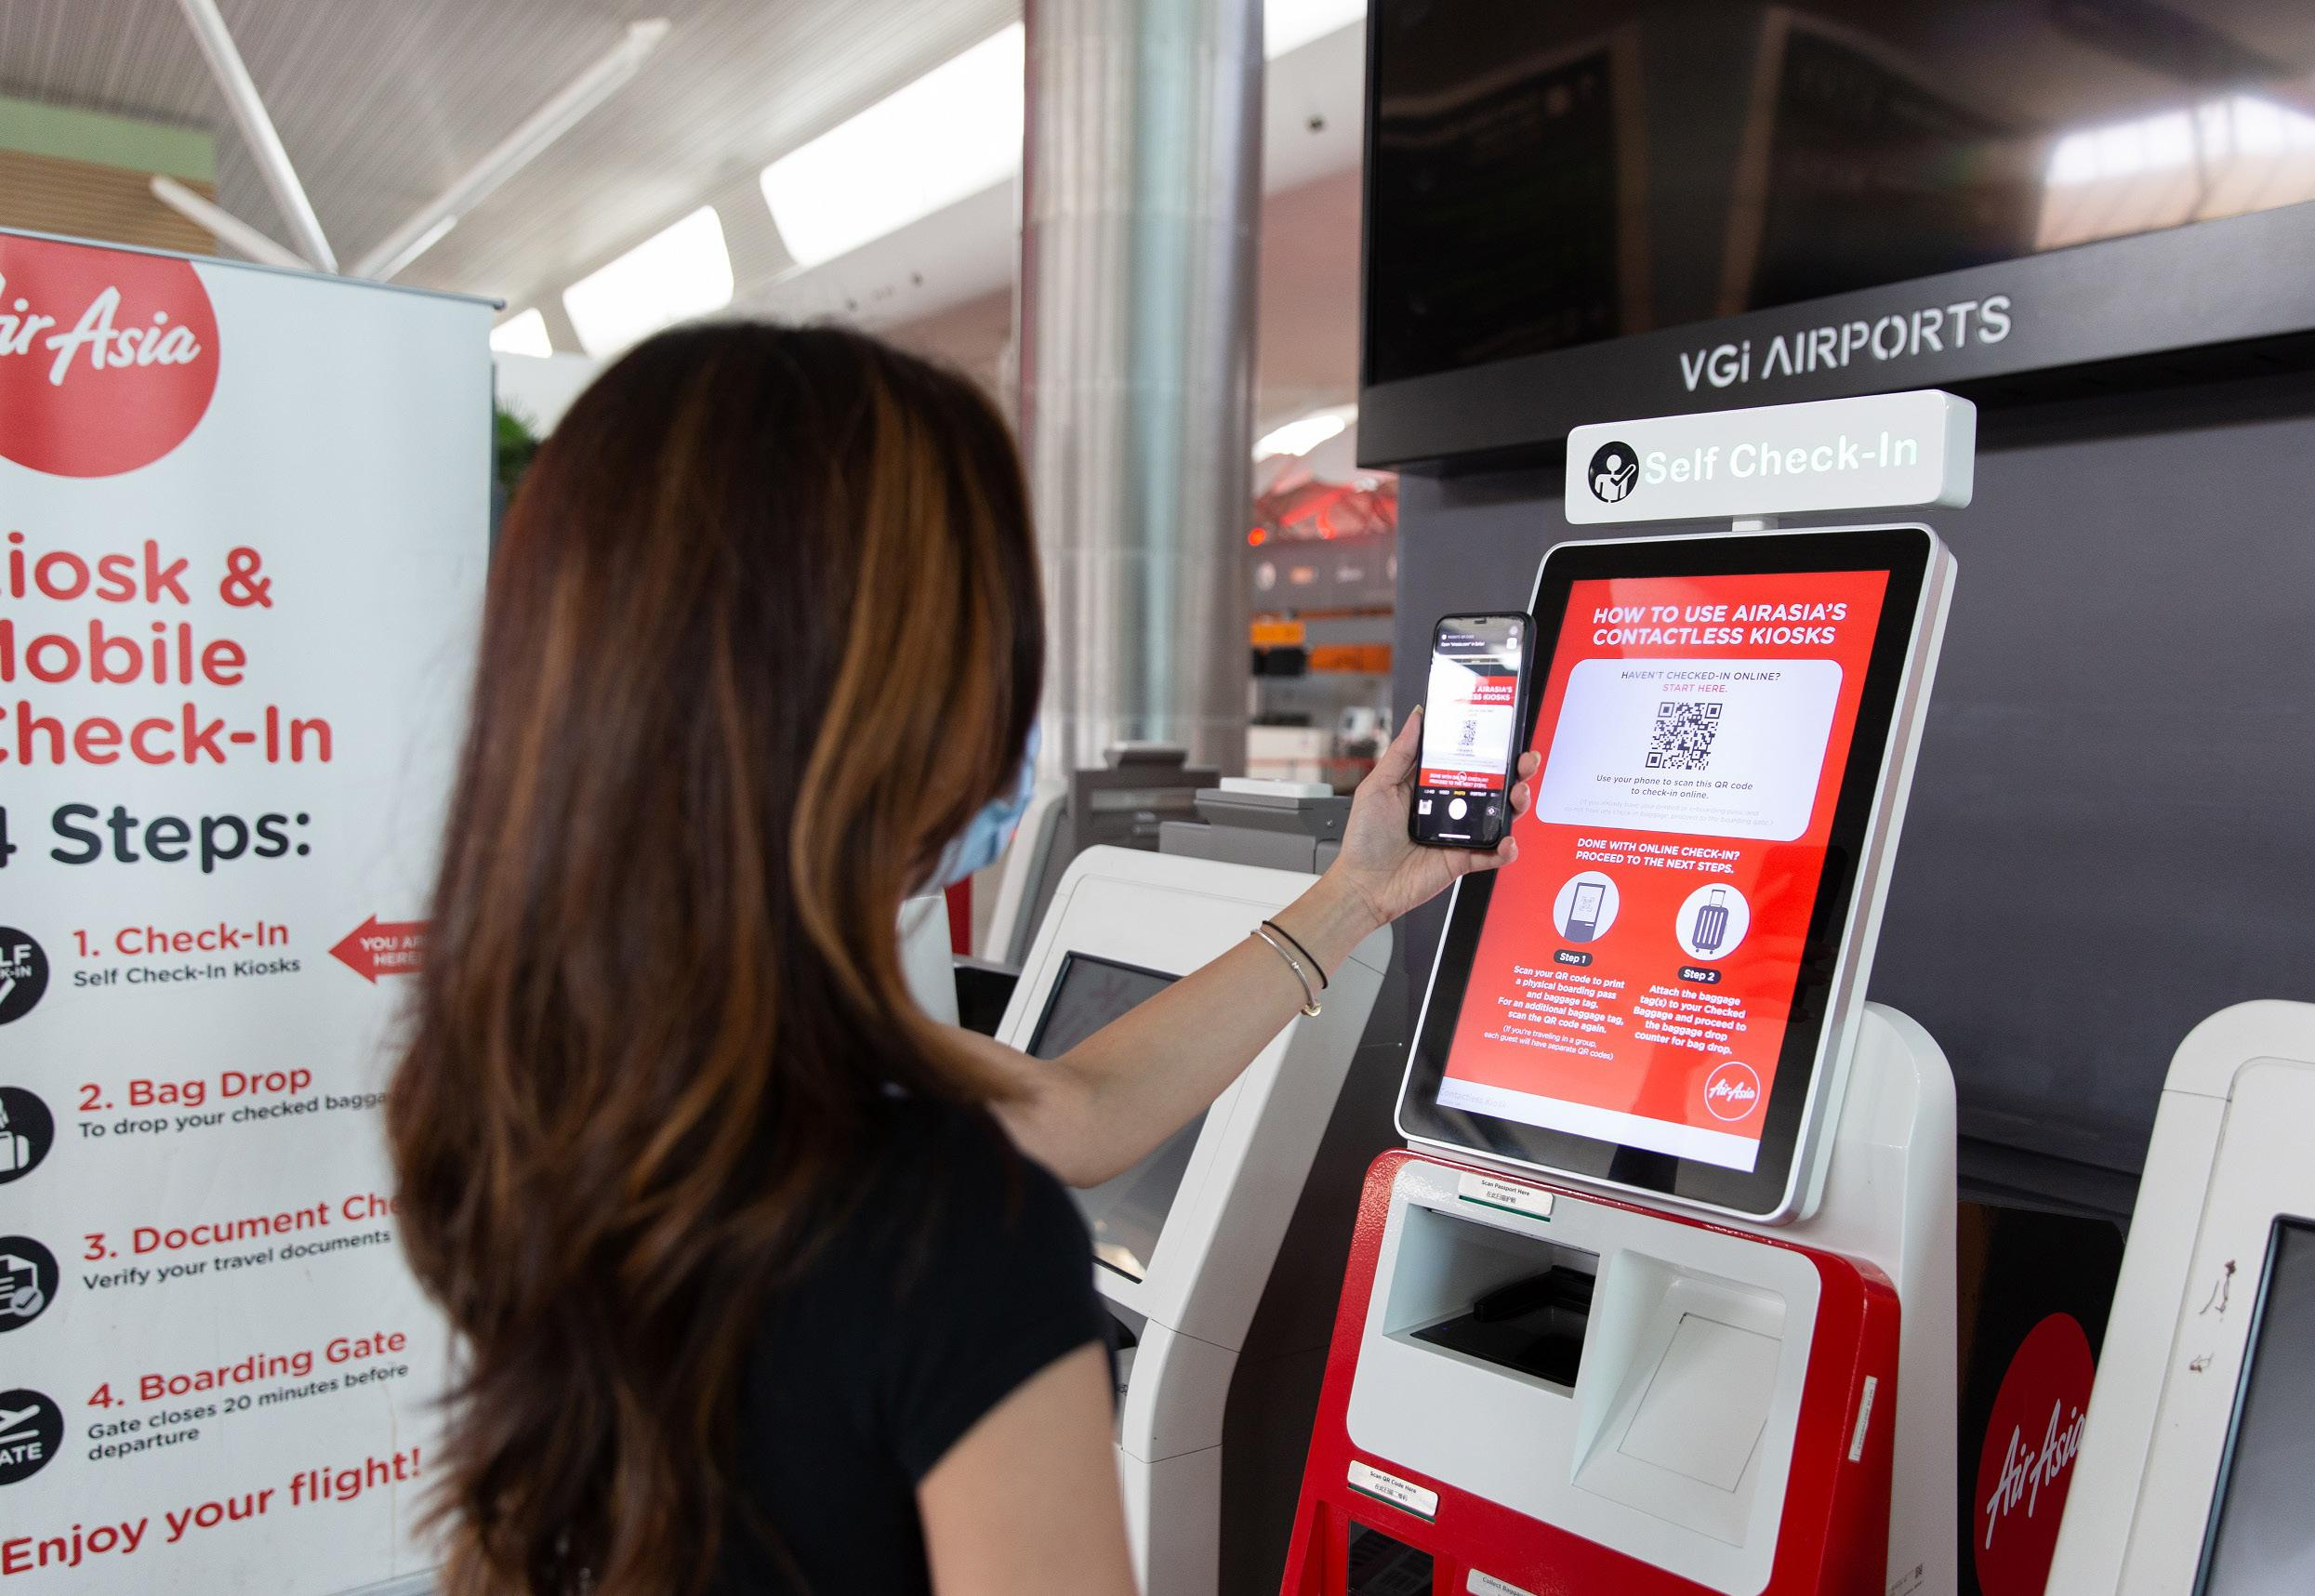 Page 18 of HANDS OFF FOR HEALTH AirAsia has entered what many consider an important component to future air travel with a series of features that utilize technology and help passengers feel safe getting back in the air